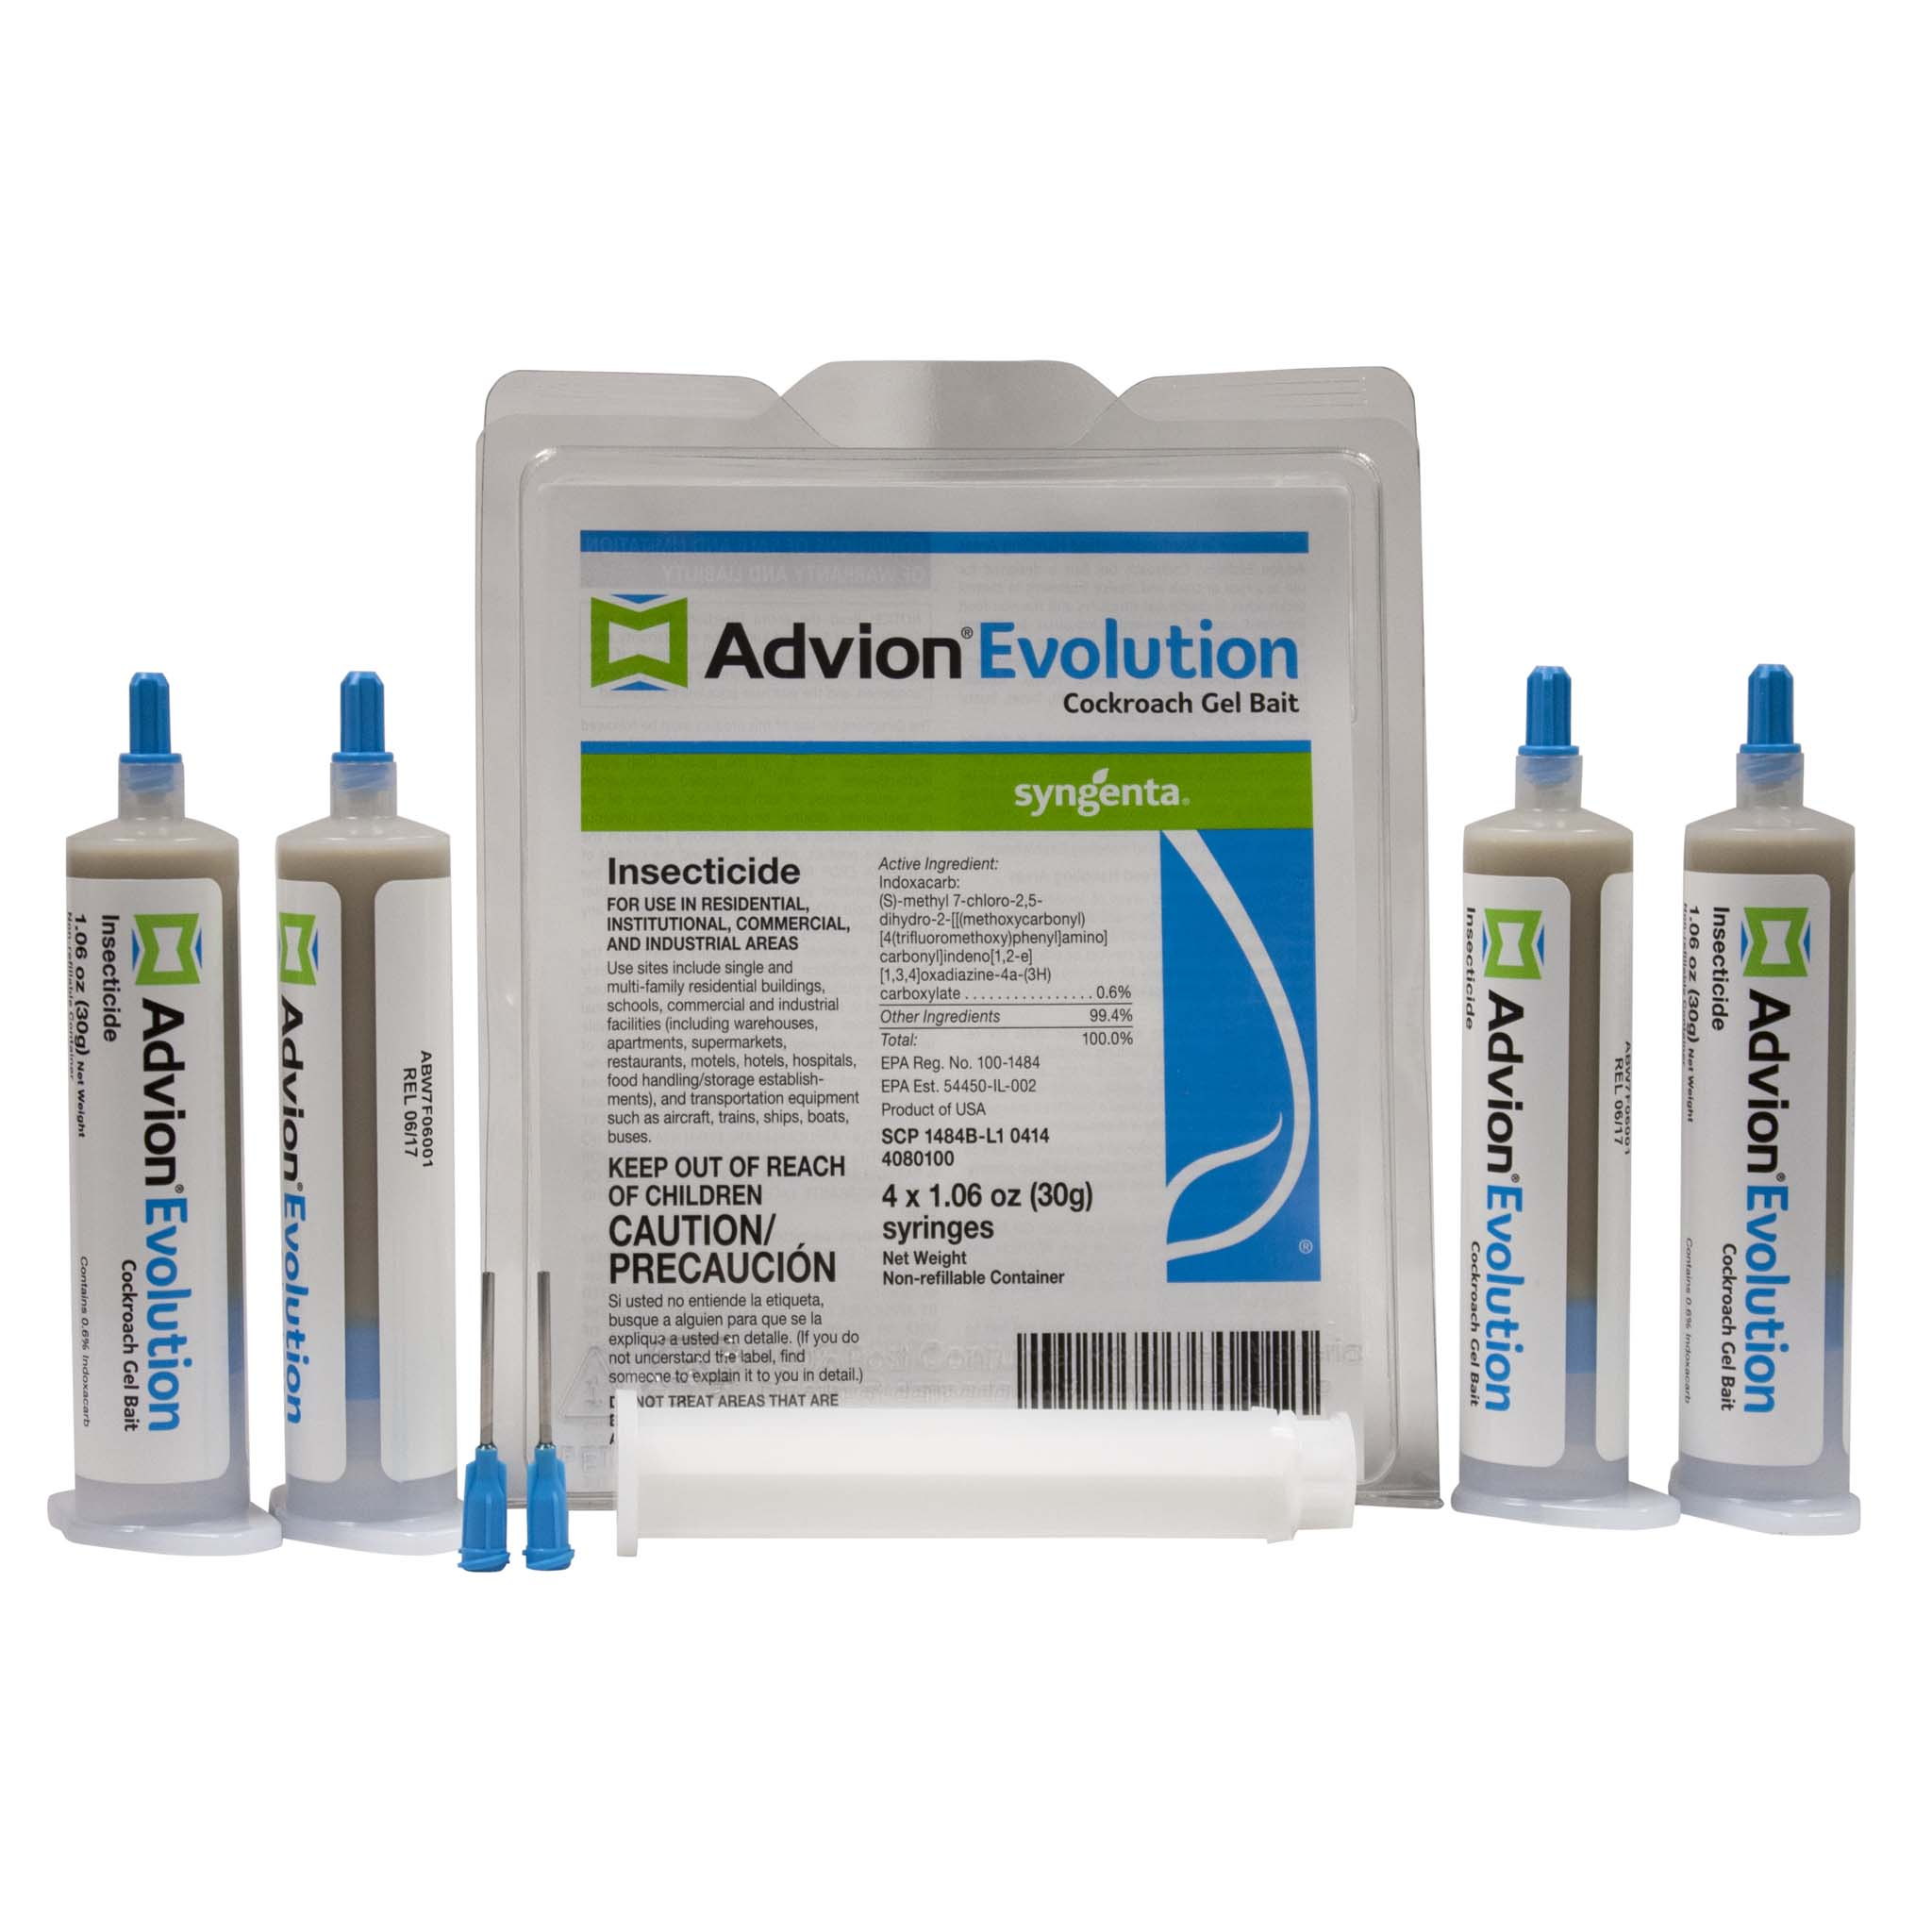 This is an image of Tactueux Advion Evolution Cockroach Gel Bait Label